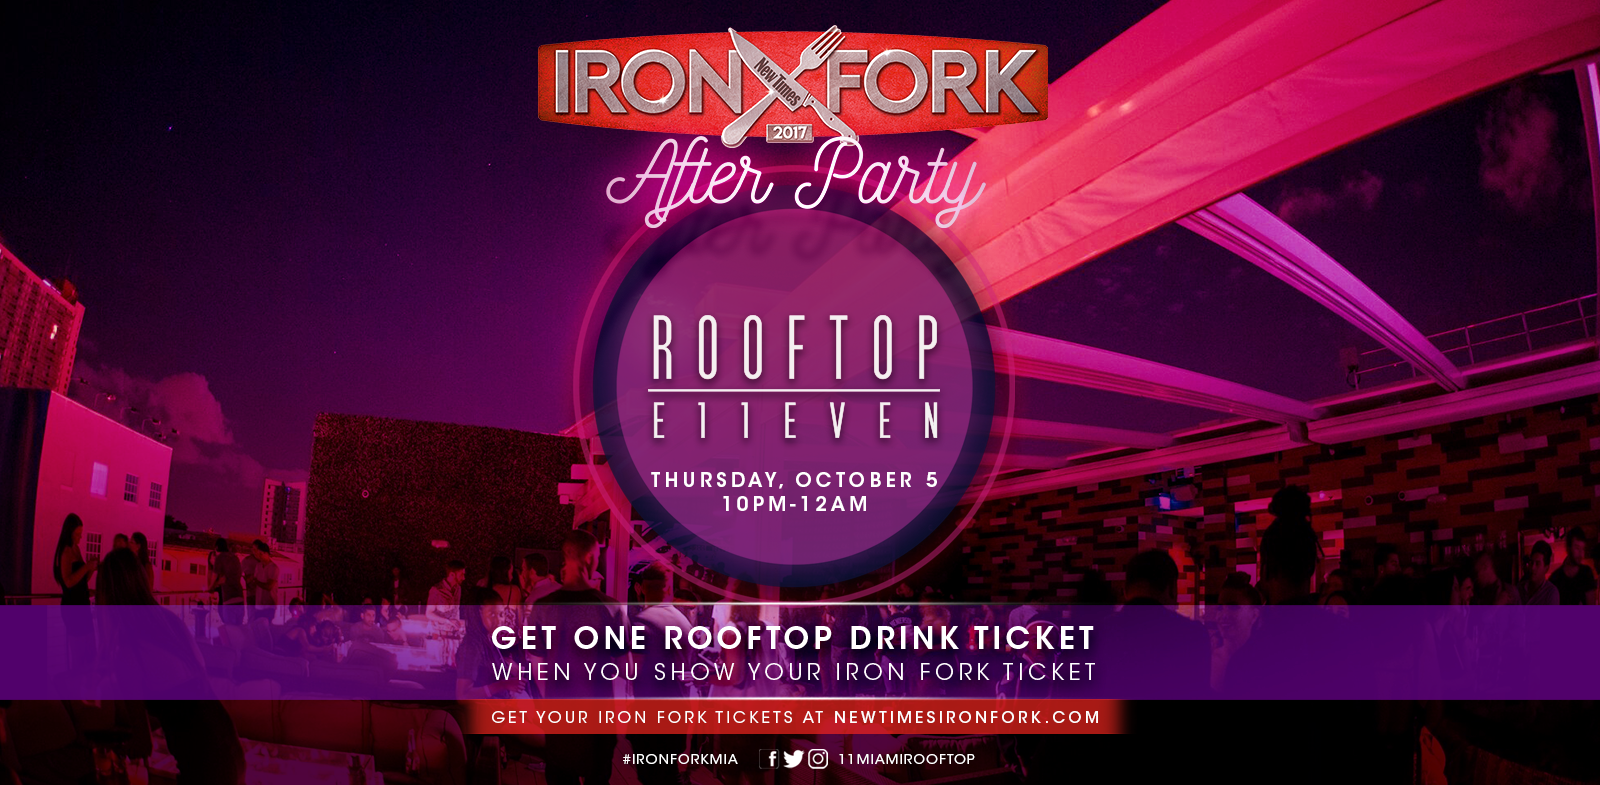 ROOFTOP at E11EVEN - Iron Fork after-party